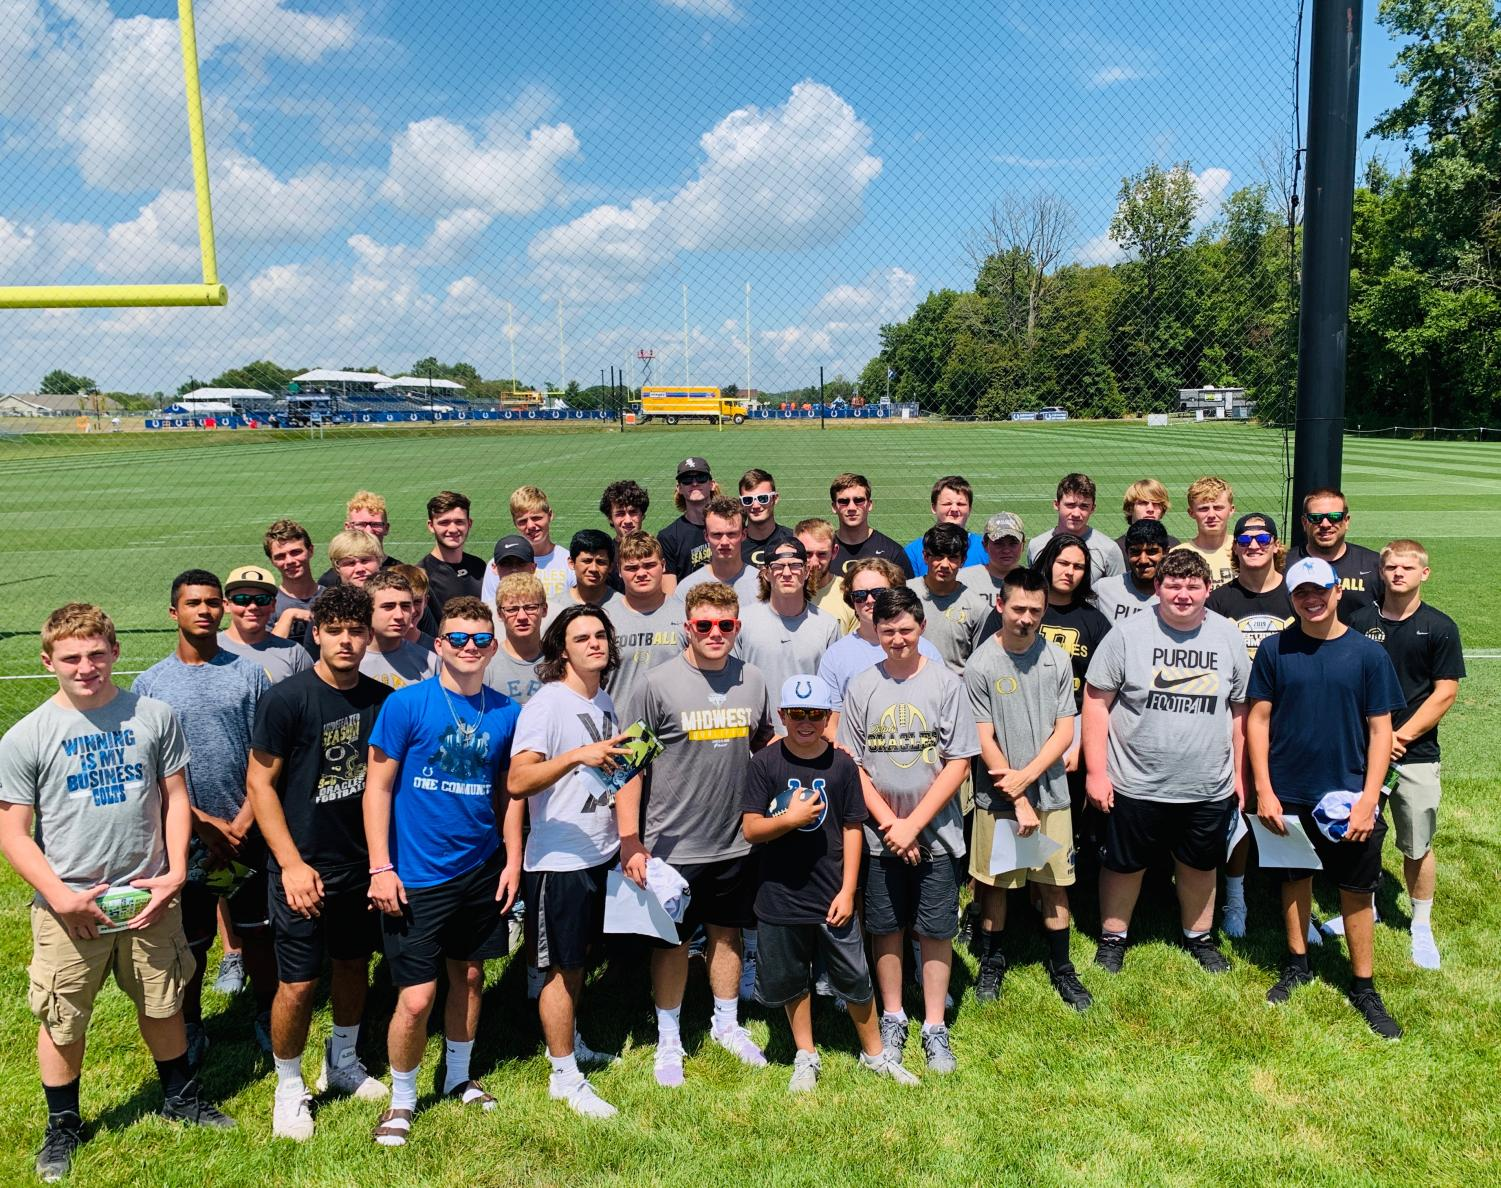 The Oracle football team poses for a picture at the Colts' practice facility.